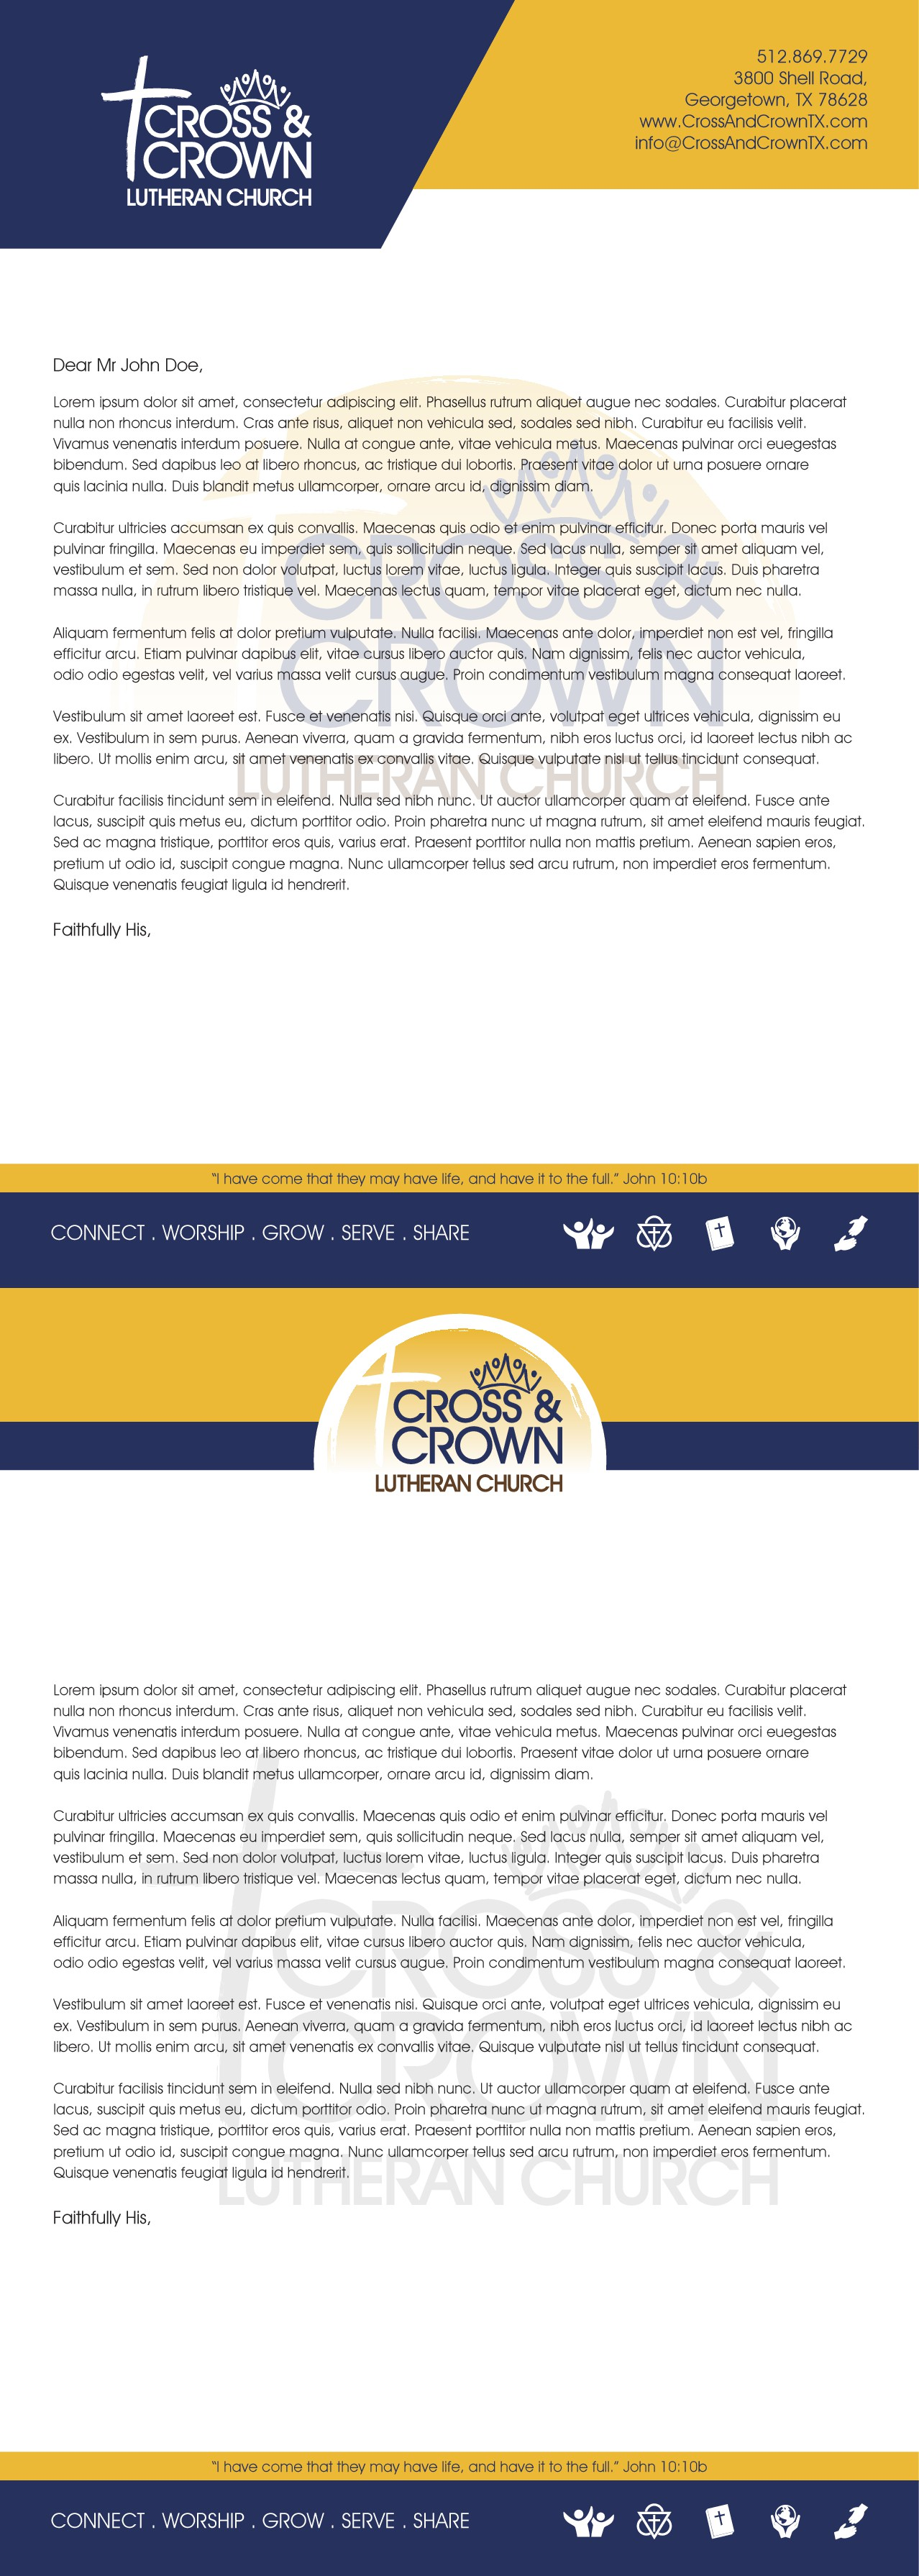 Creative and Eye Catching Non-Profit Brand Look (starting with Letterhead and Biz Card)